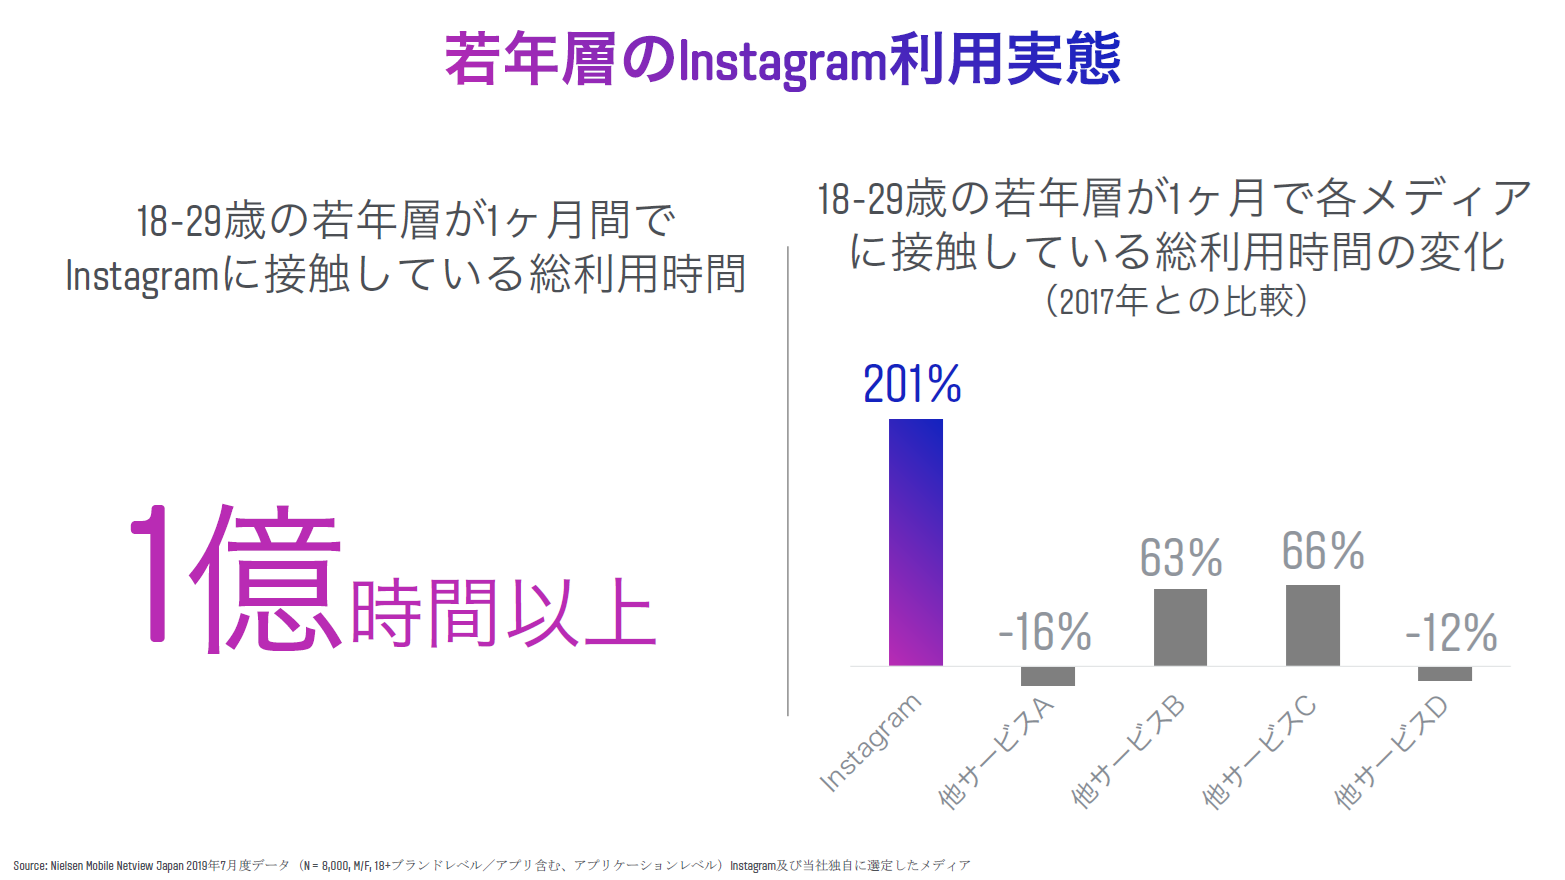 Instagram Day 利用実態